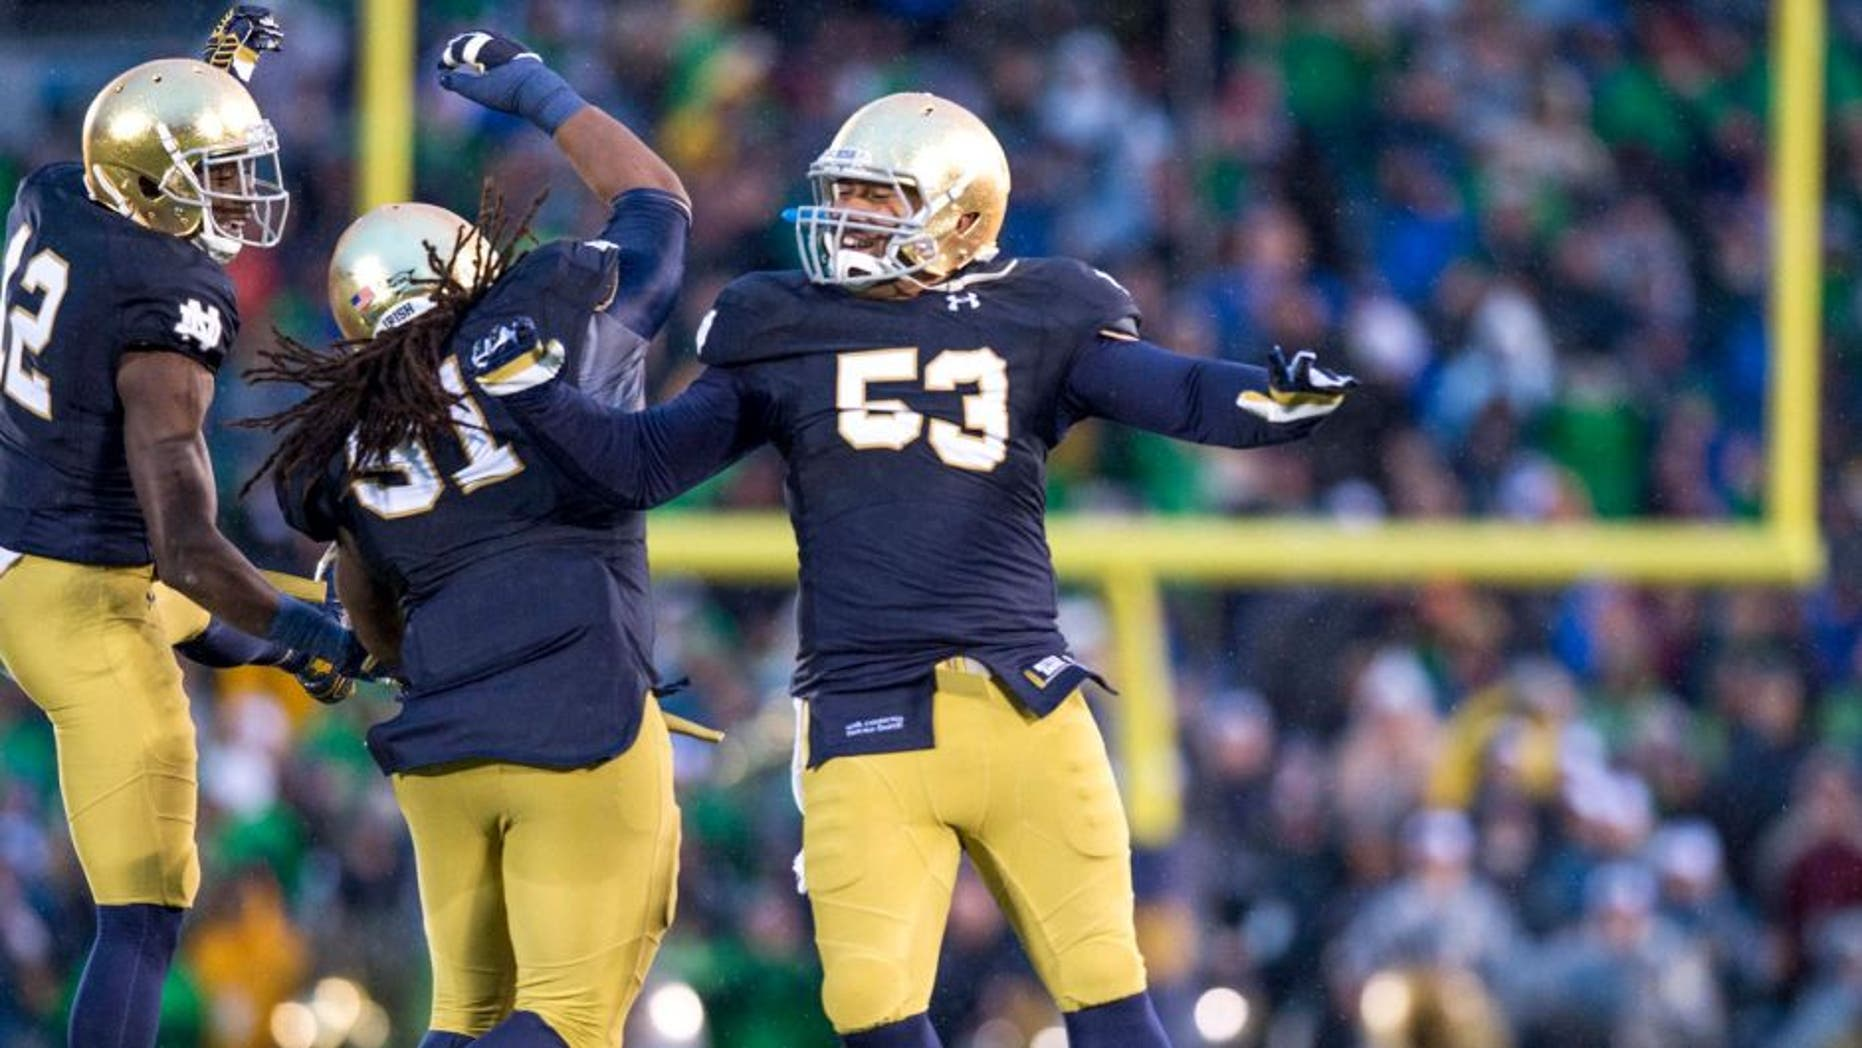 Notre Dame Fighting Irish cornerback Devin Butler (12) defensive lineman Sheldon Day (91) and defensive lineman Justin Utupo (53) react after Notre Dame defeated the Stanford Cardinal 17-14 at Notre Dame Stadium. Mandatory Credit: Matt Cashore-USA TODAY Sports